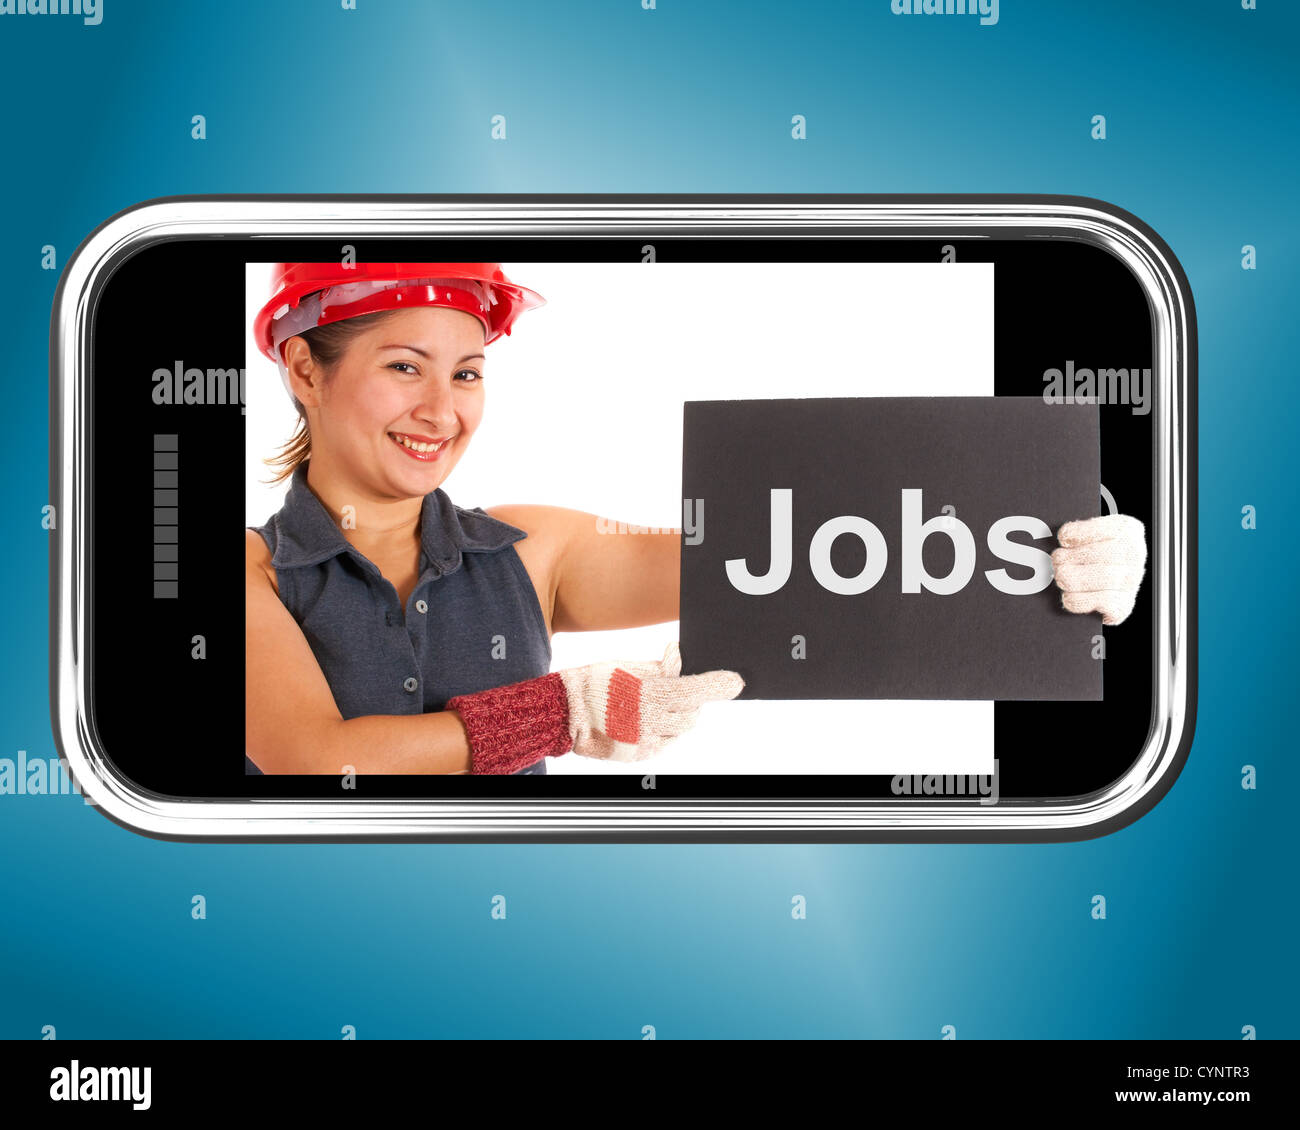 Jobs Sign With Construction Worker Showing Careers Online - Stock Image